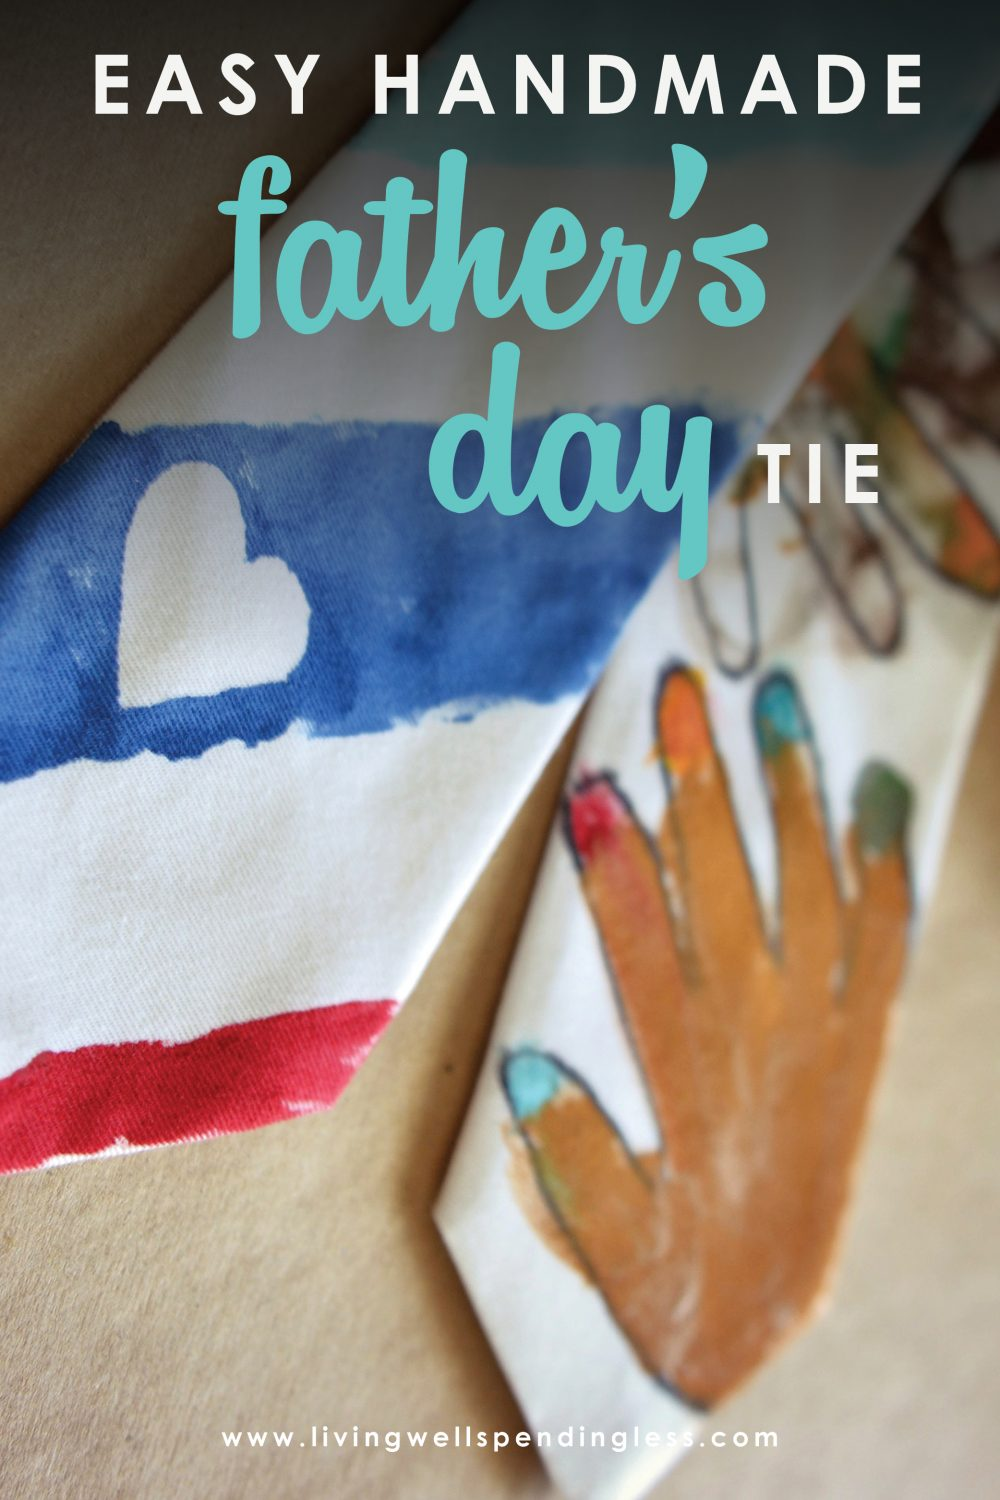 Looking for a special Father's Day gift? This handmade Father's Day is the perfect gift for dad with a personal touch from your kiddos!